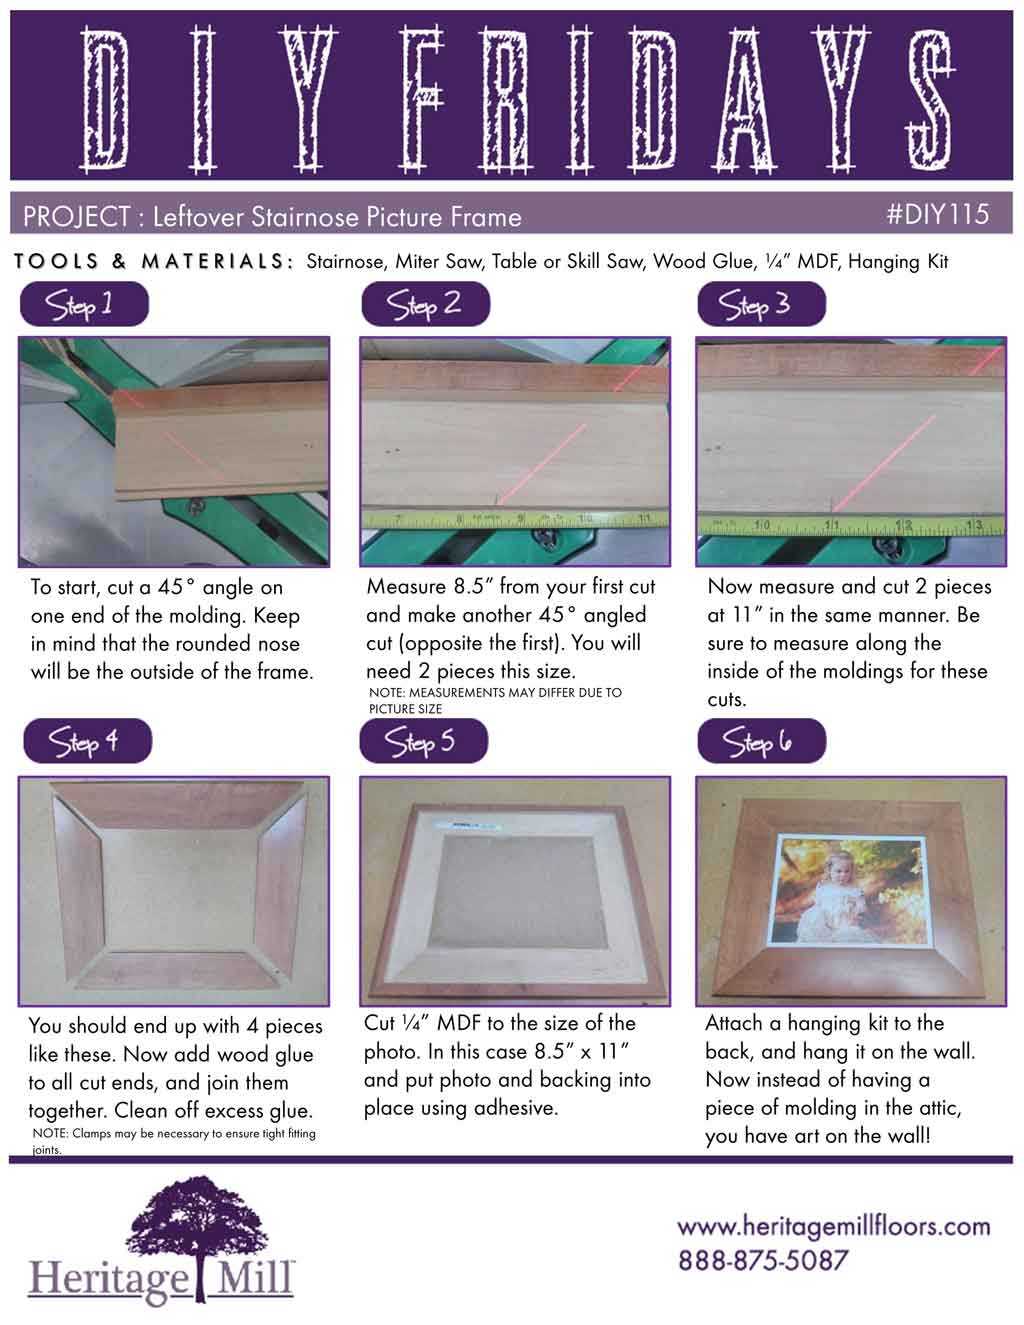 Diy Project Leftover Stairnose Picture Frame Heritage